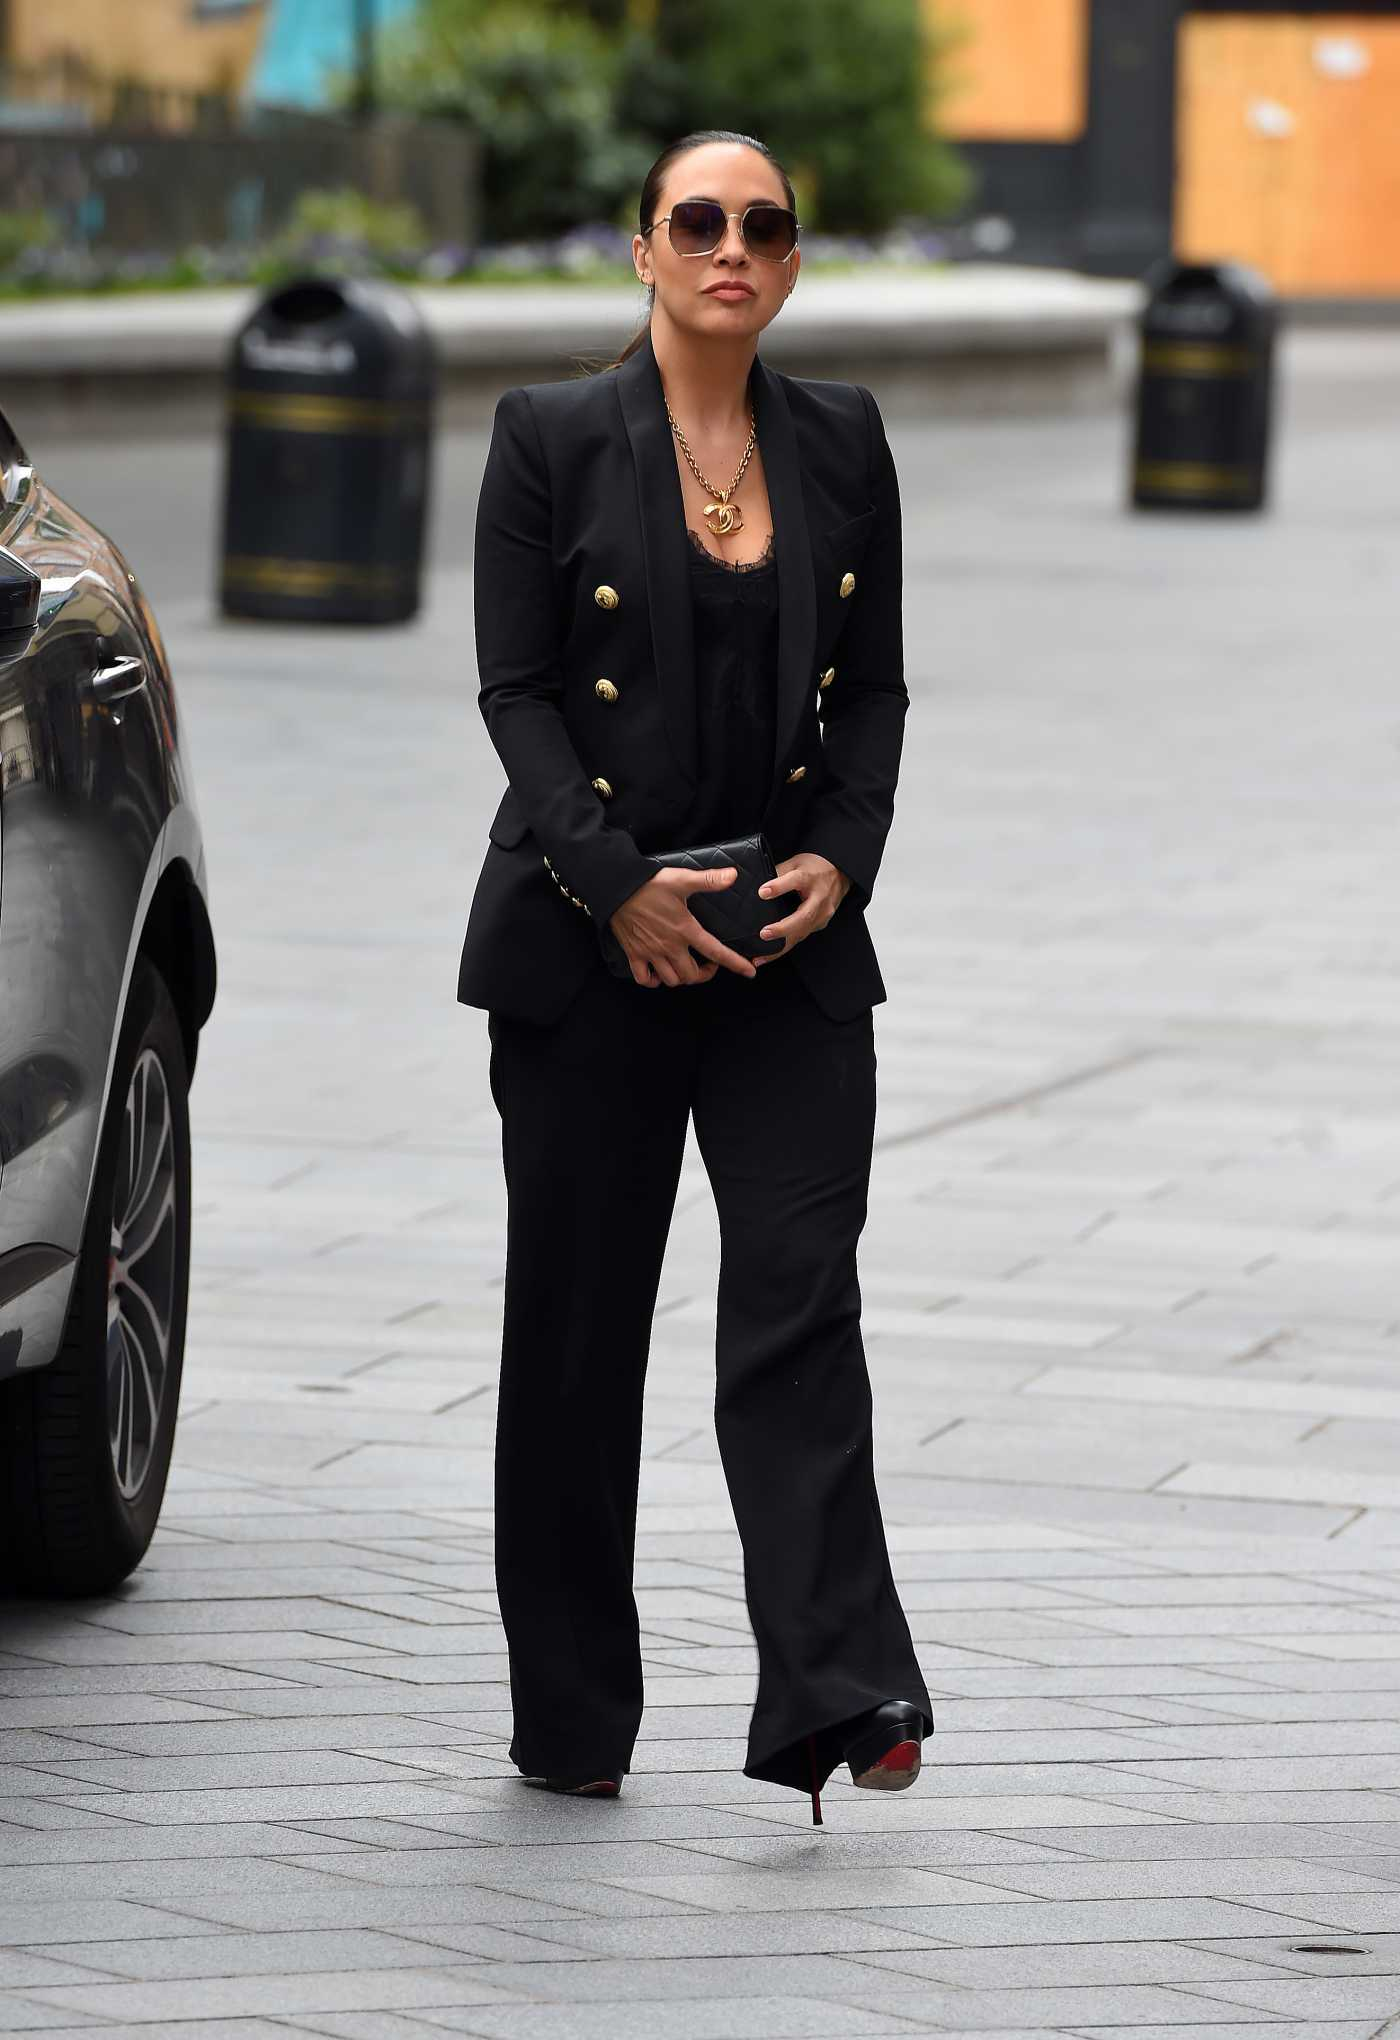 Myleene Klass in a Black Suit Arrives at the Global Radio in London 06/29/2020